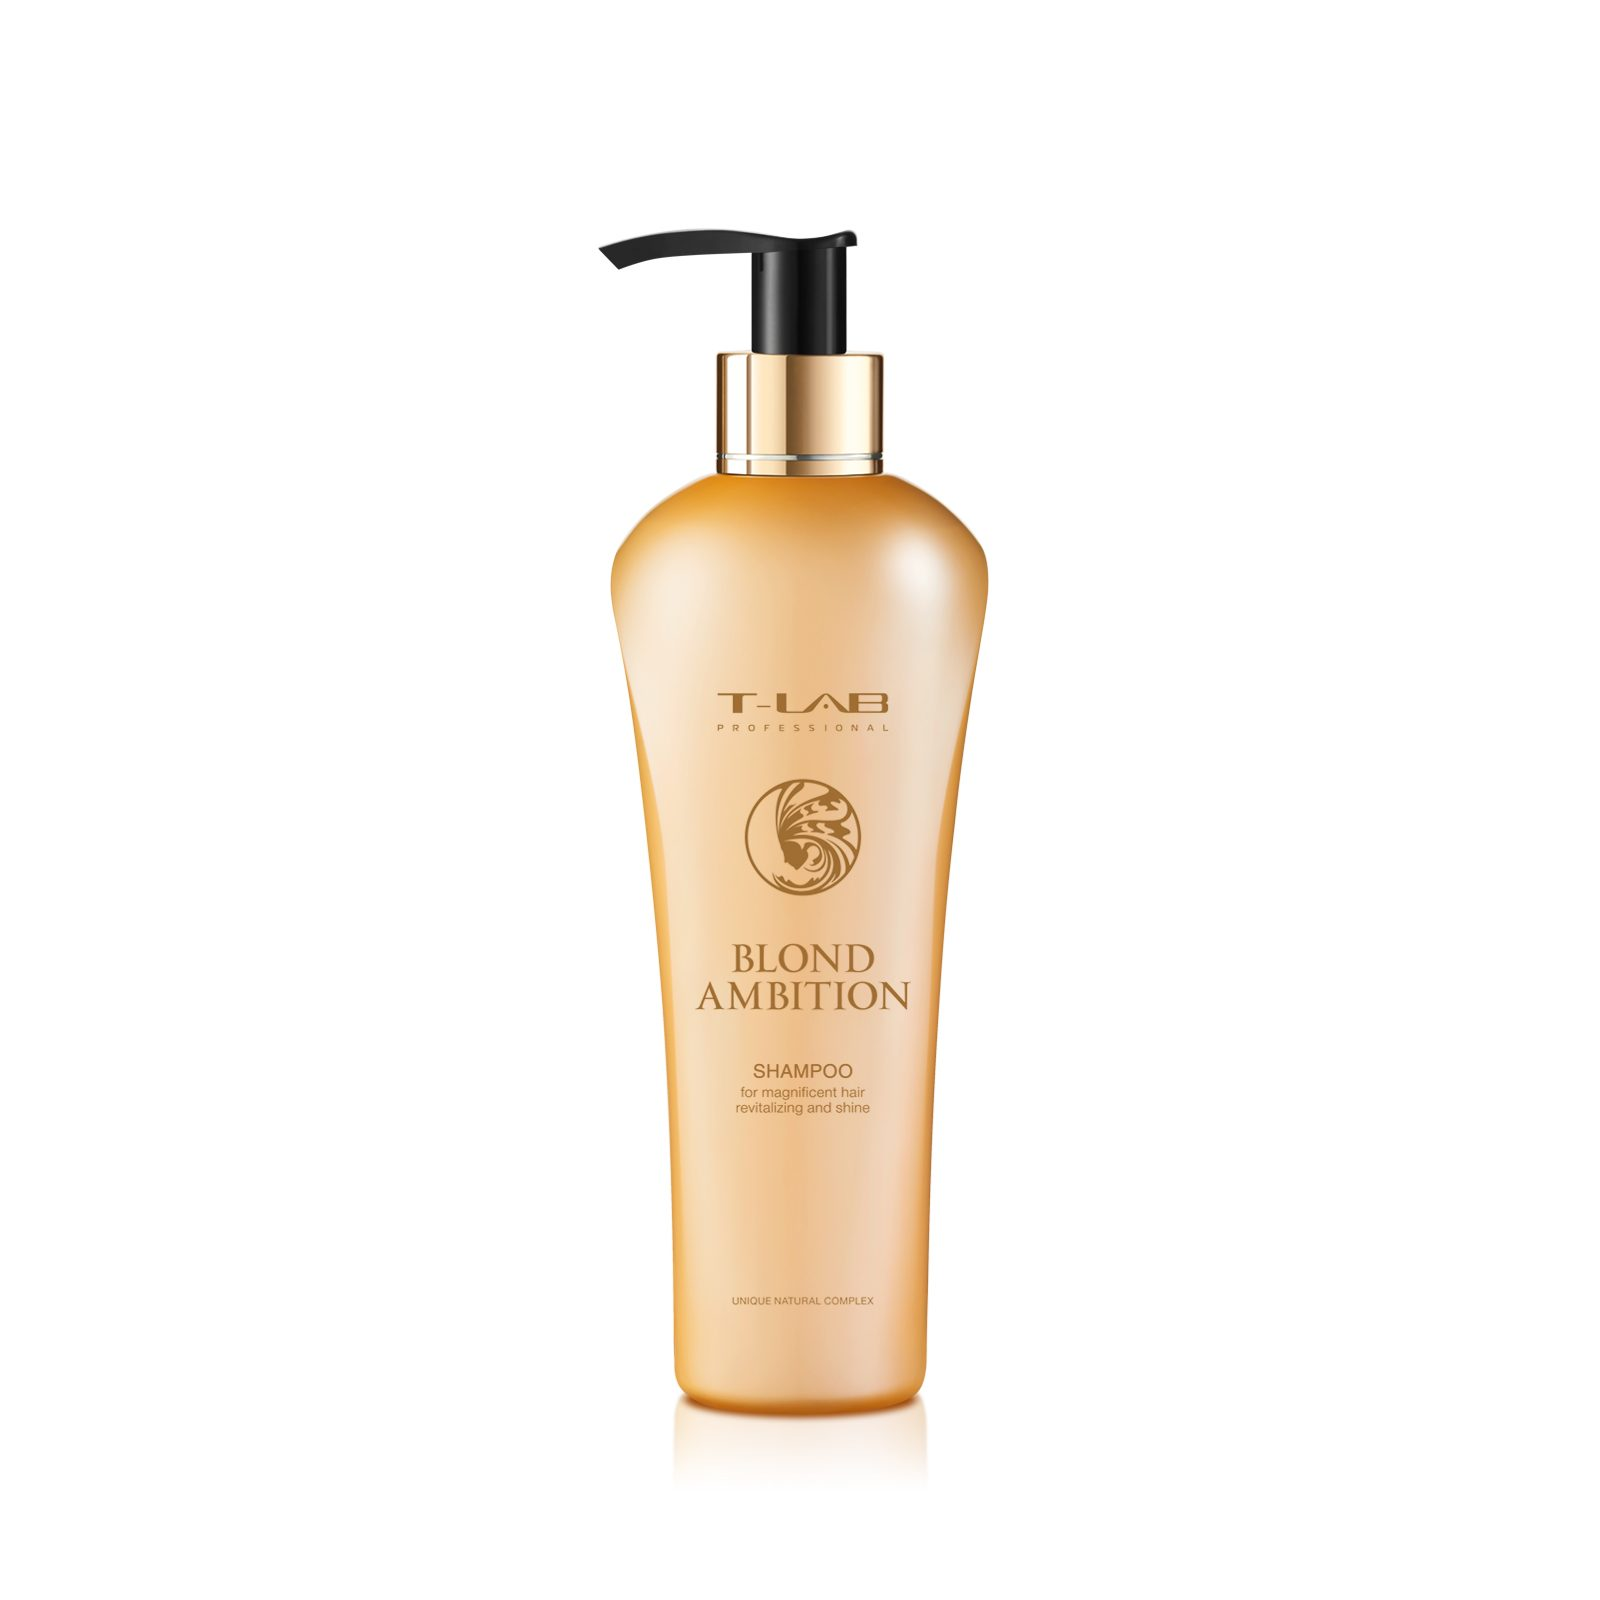 BLOND AMBITION SHAMPOO 250 ml